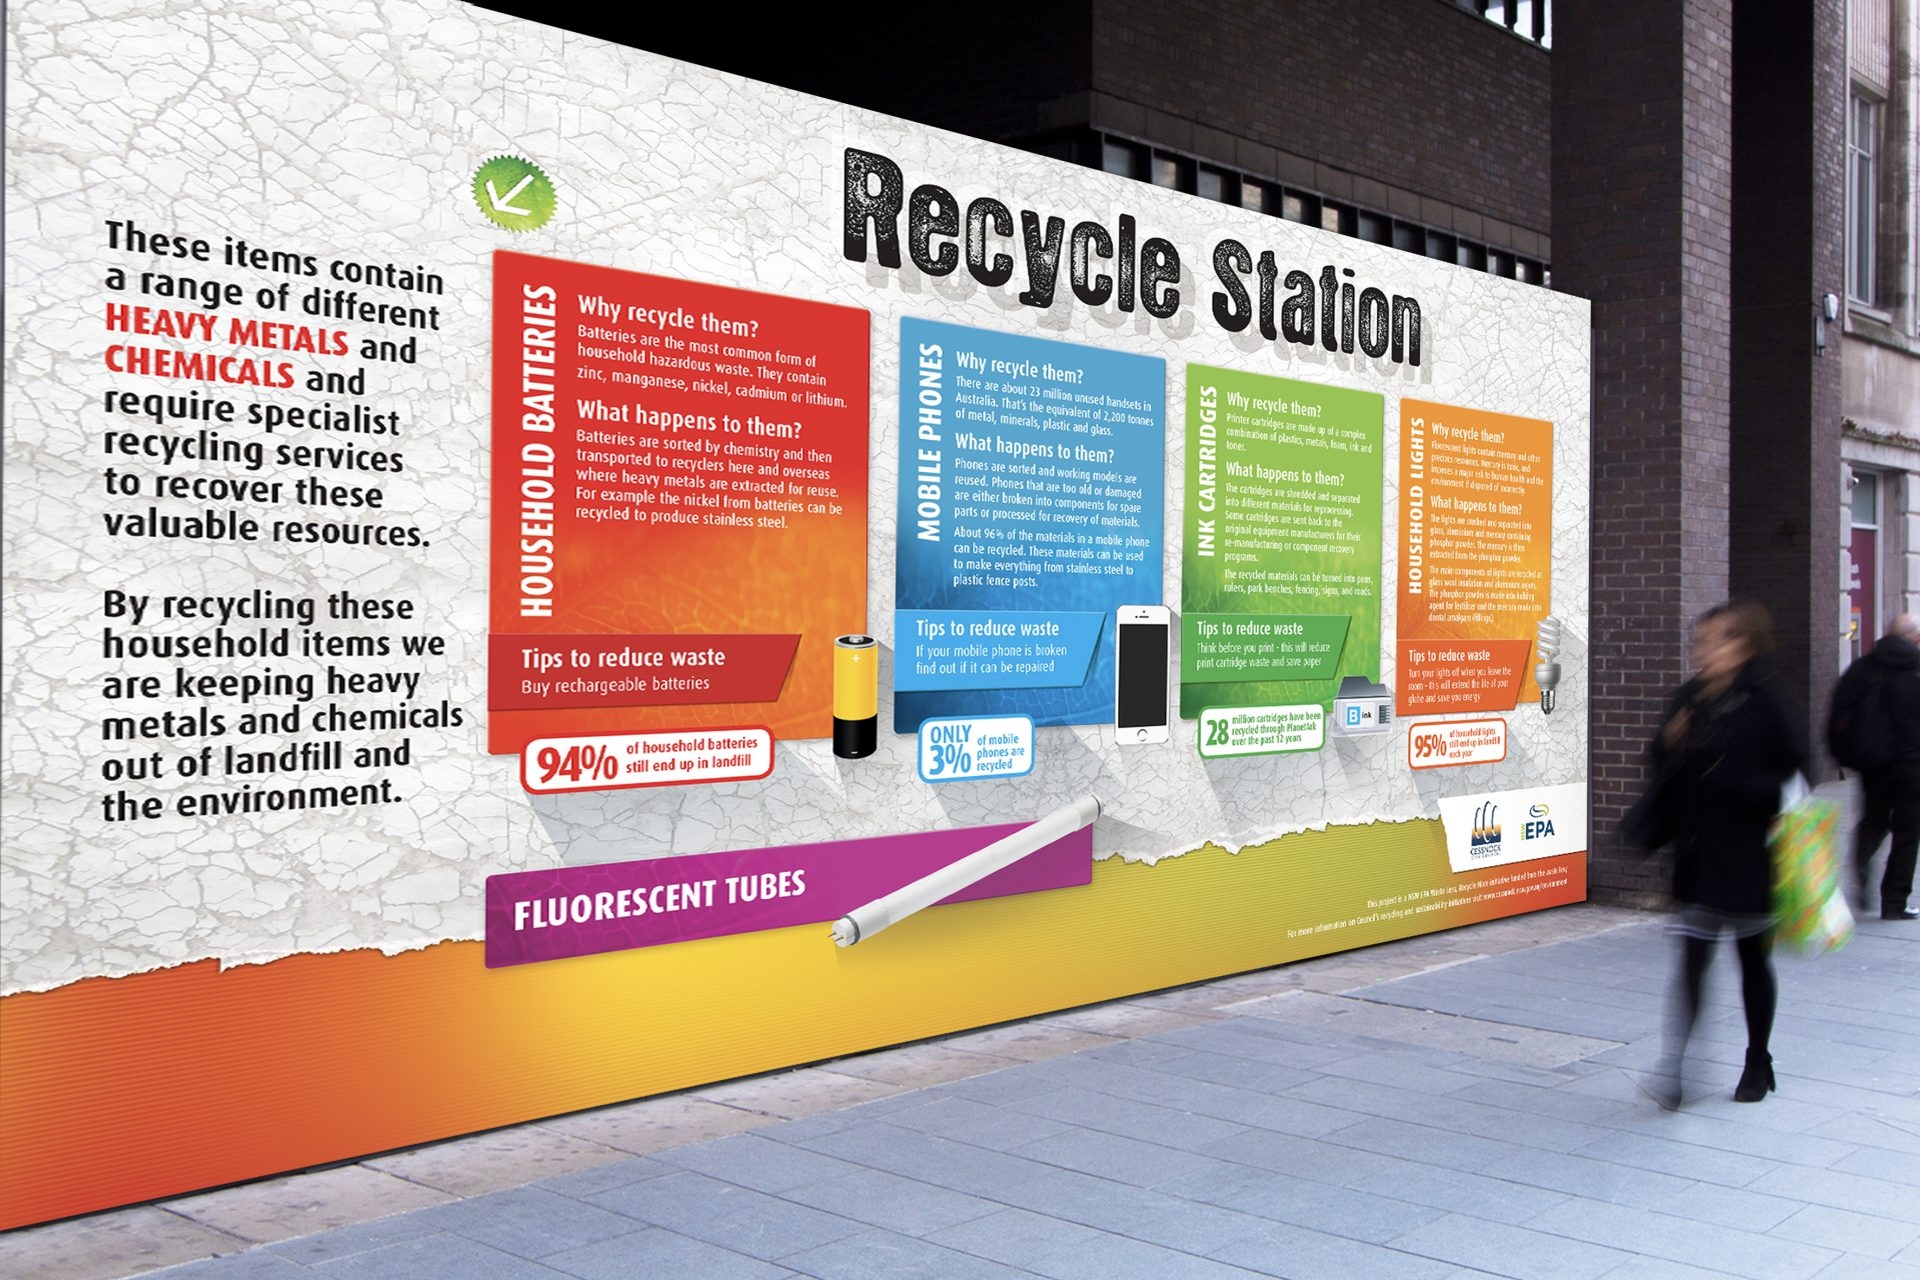 Recycle Station Hoarding FOR Cessnock City Council